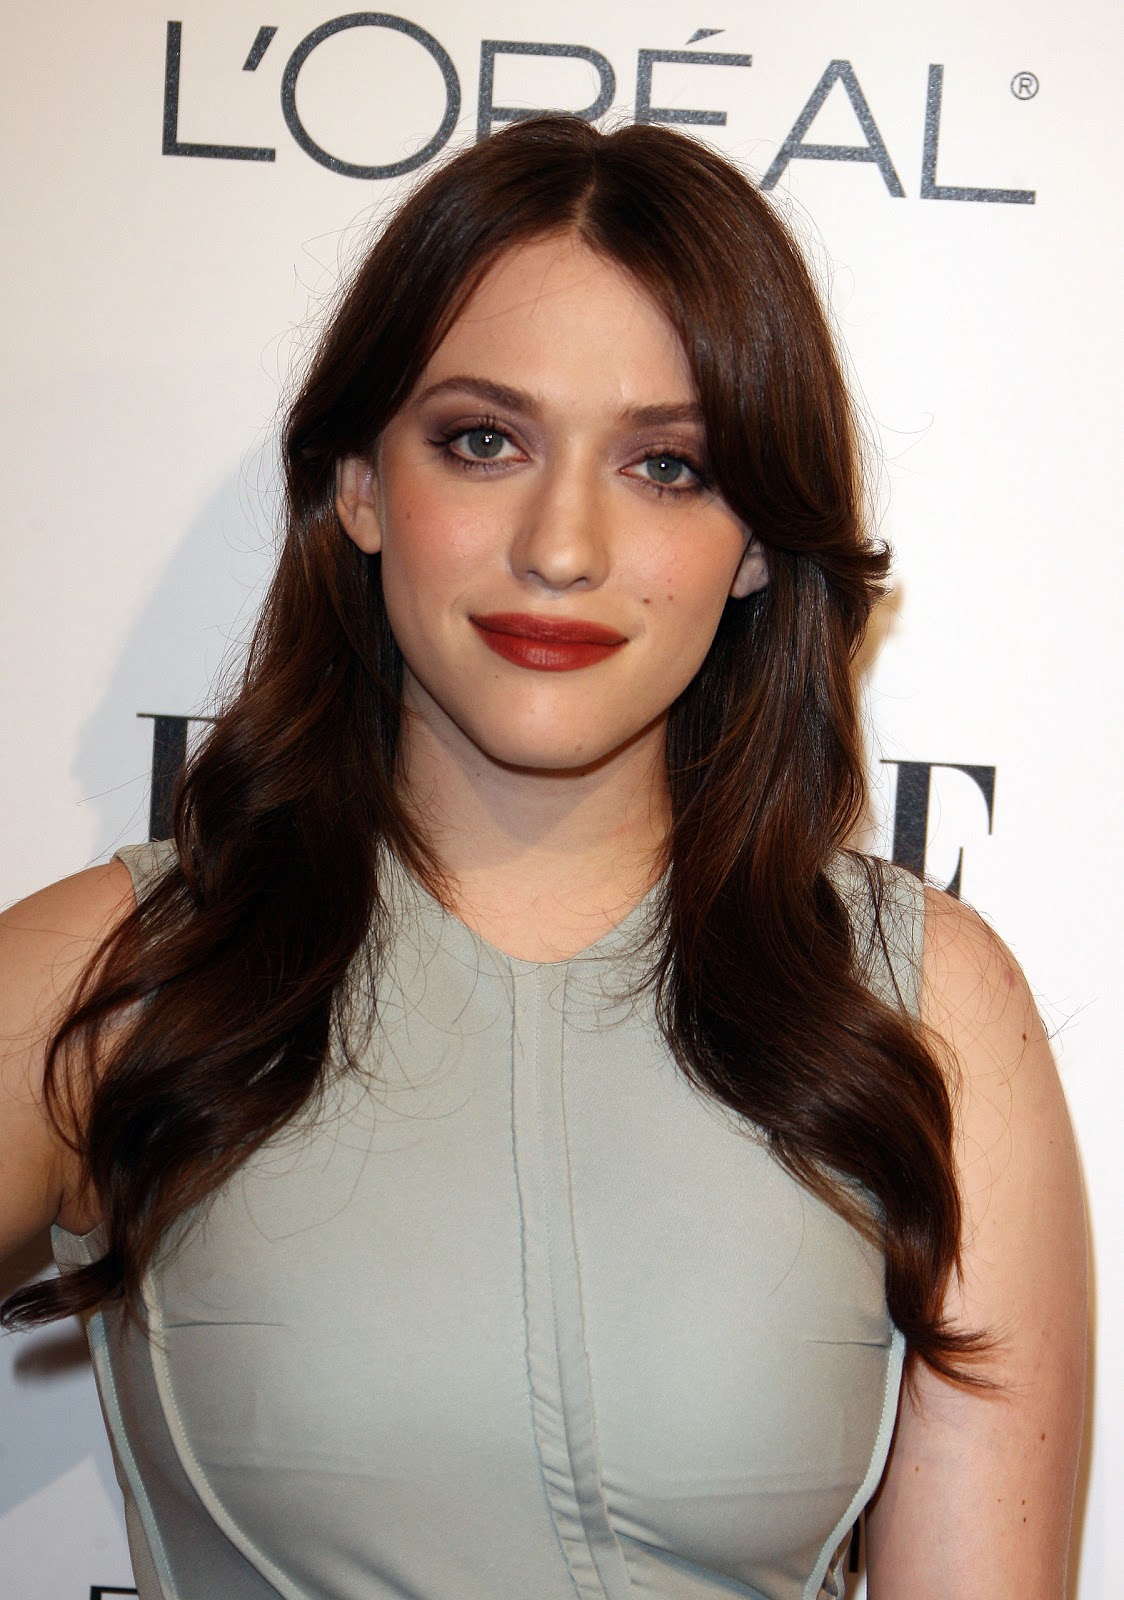 kat dennings hot: Kat Dennings Hot Photos